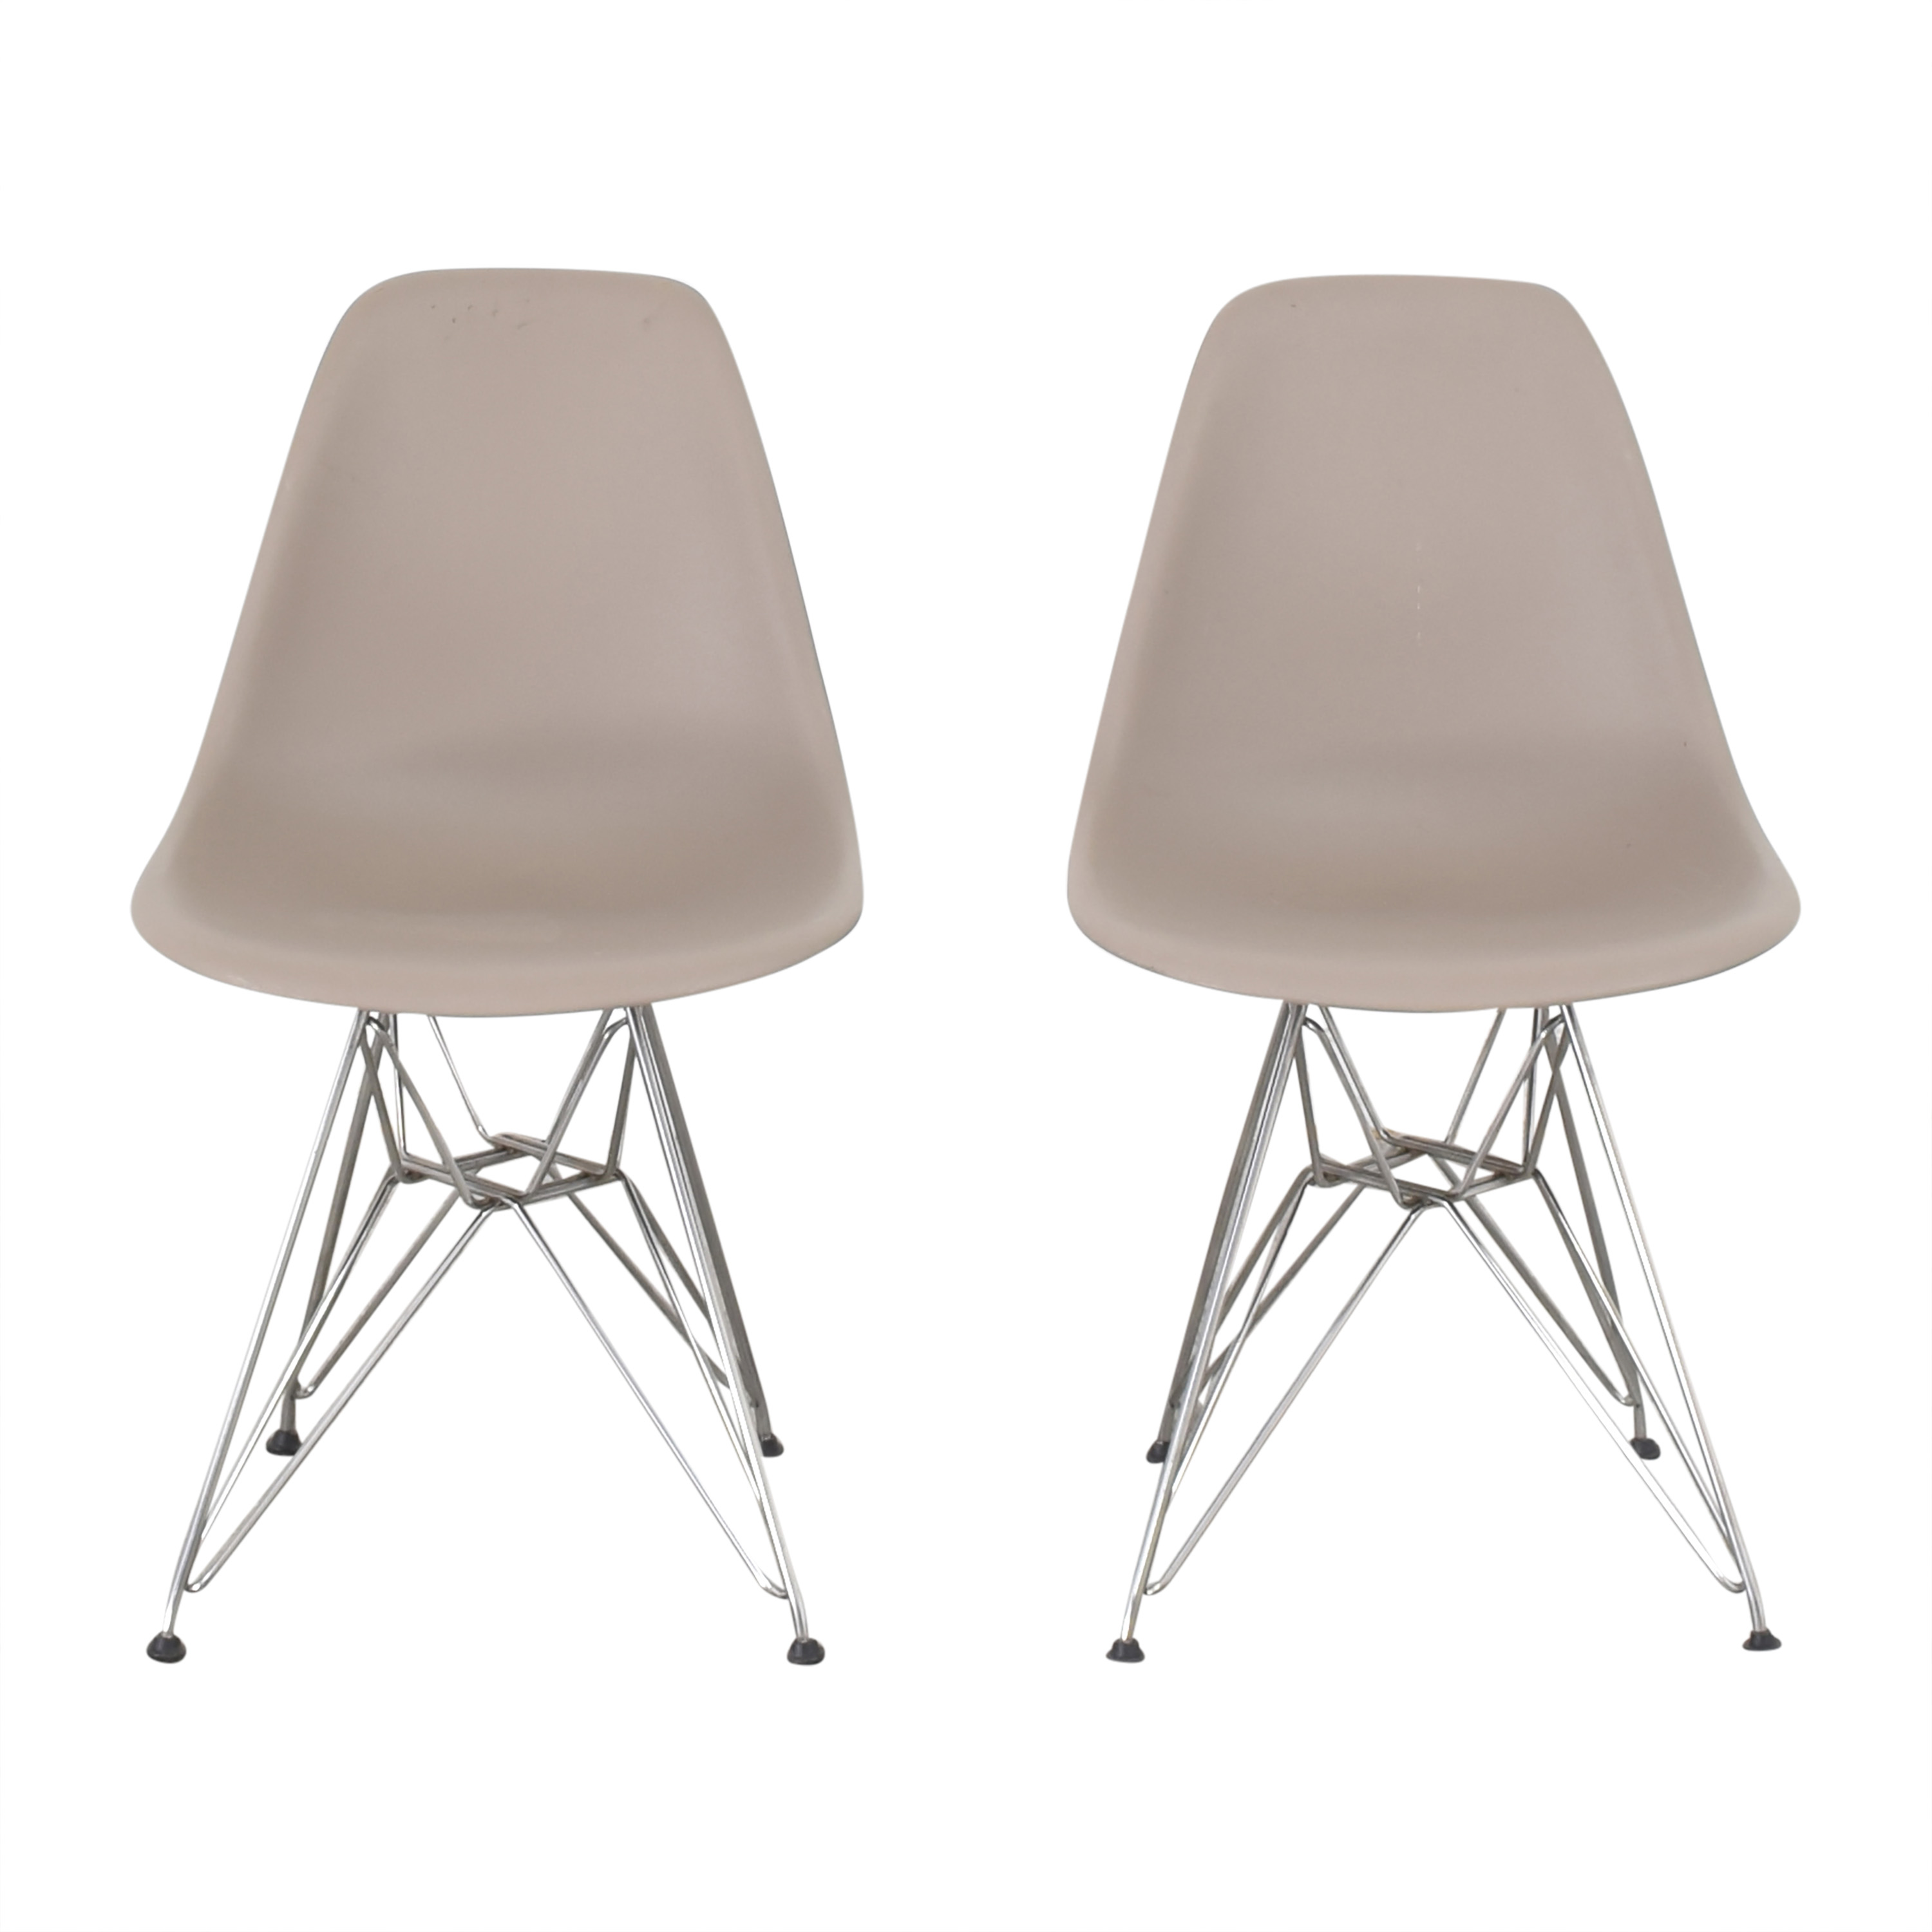 Herman Miller Herman Miller Eames Molded Dining Chairs on sale